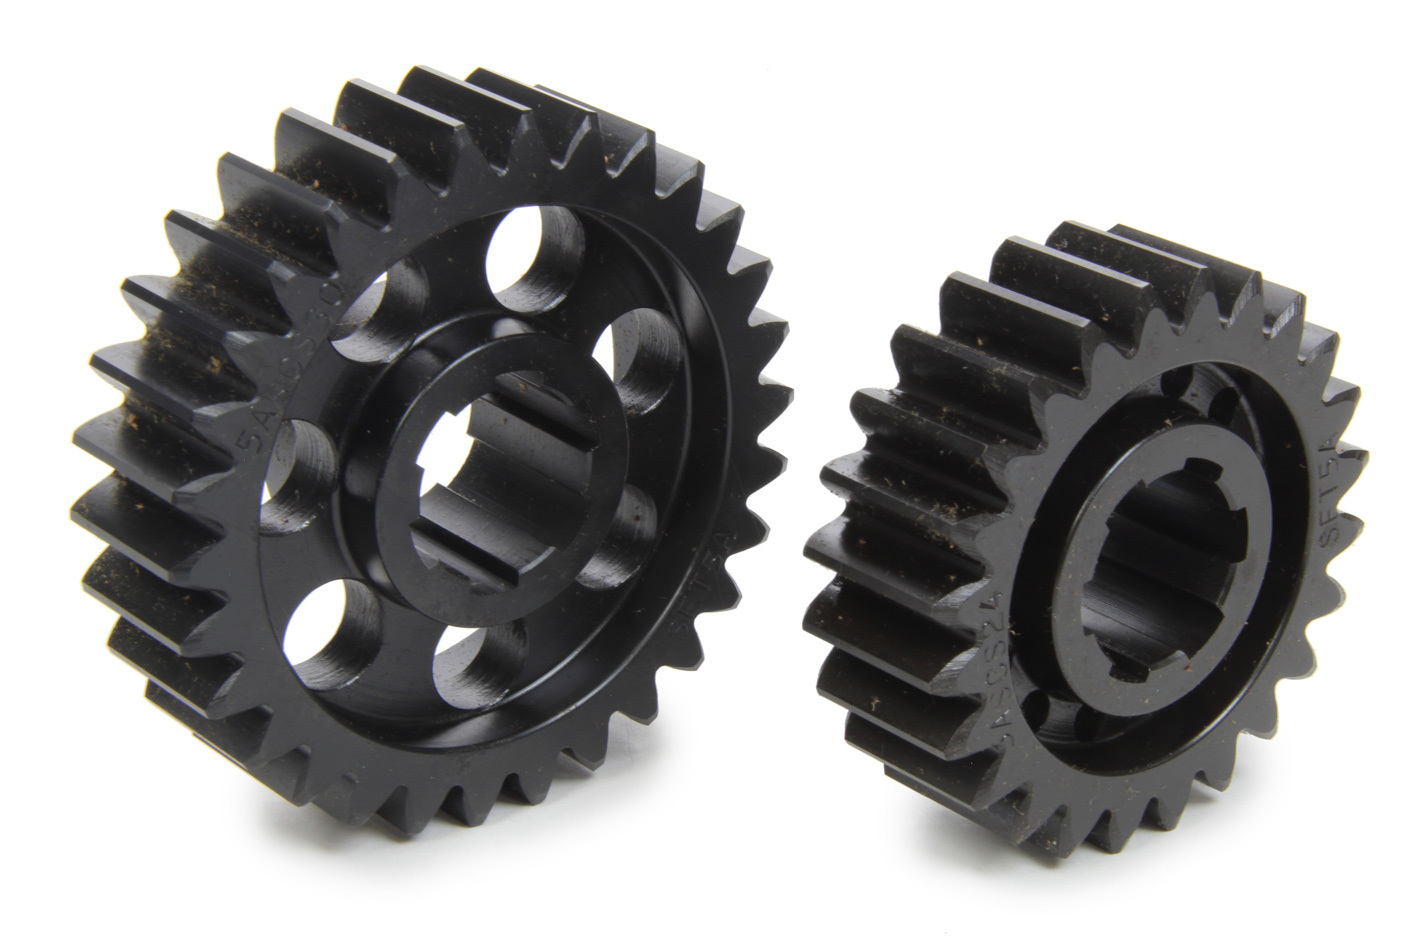 SCS Gears 65A Quick Change Gear Set, Professional, Set 65A, 6 Spline, 4.11 Ratio 3.29 / 5.14, 4.33 Ratio 3.46 / 5.41, Steel, Each